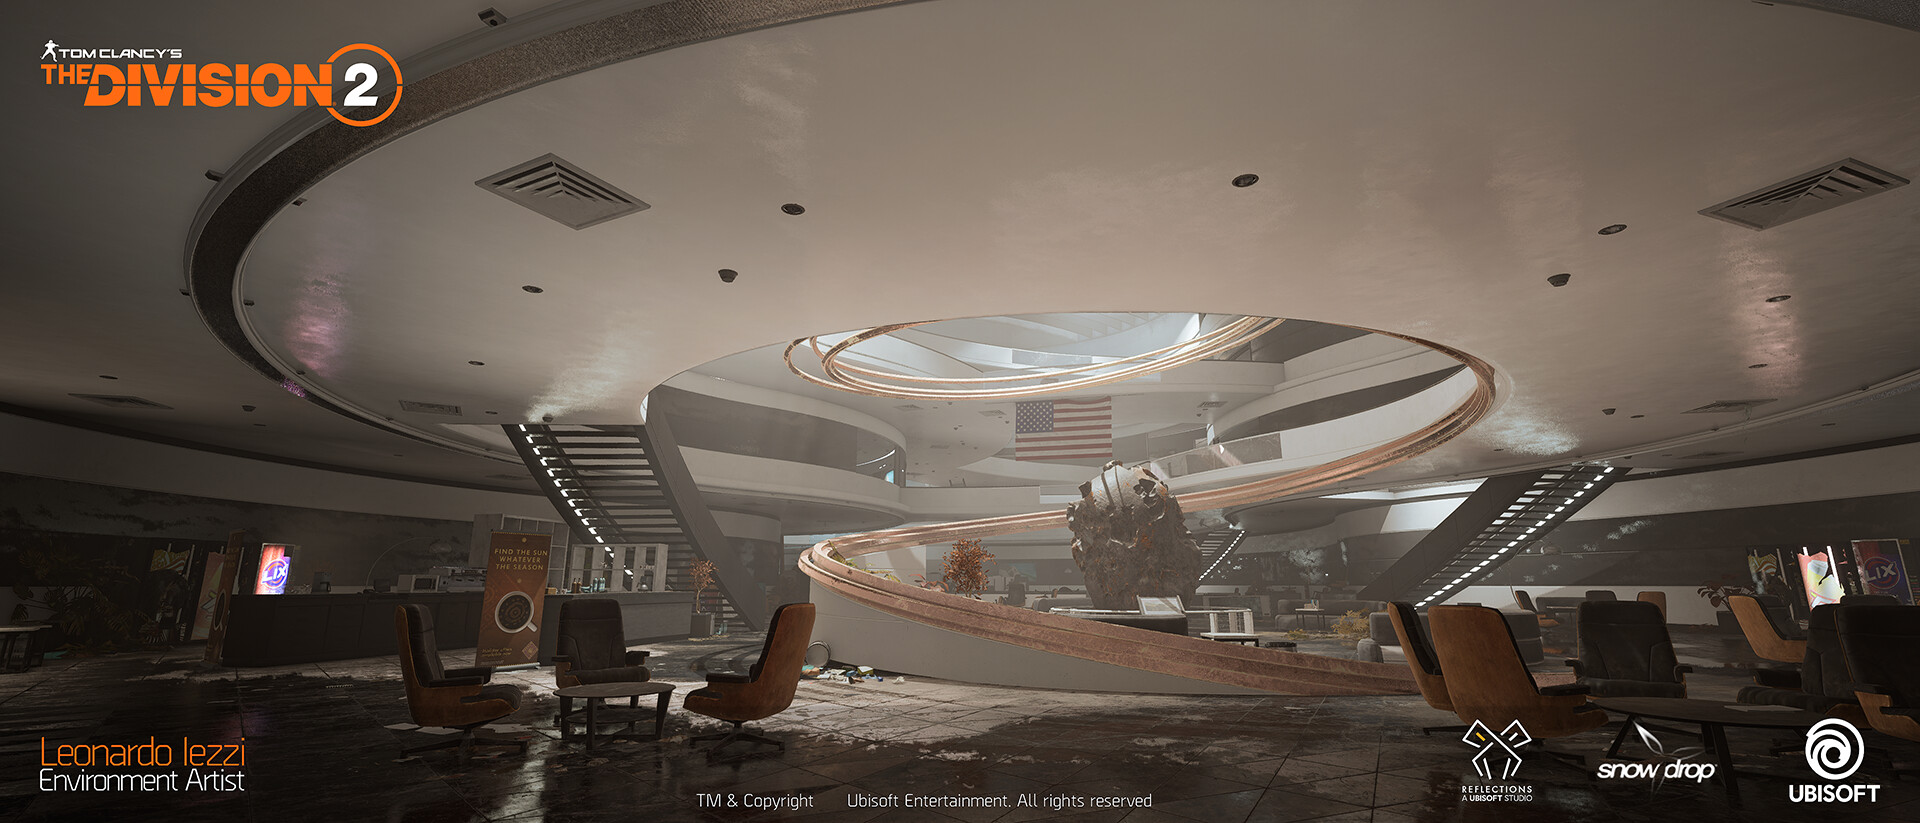 Leonardo iezzi leonardo iezzi the division 2 environment art 02 atrium 023 wide